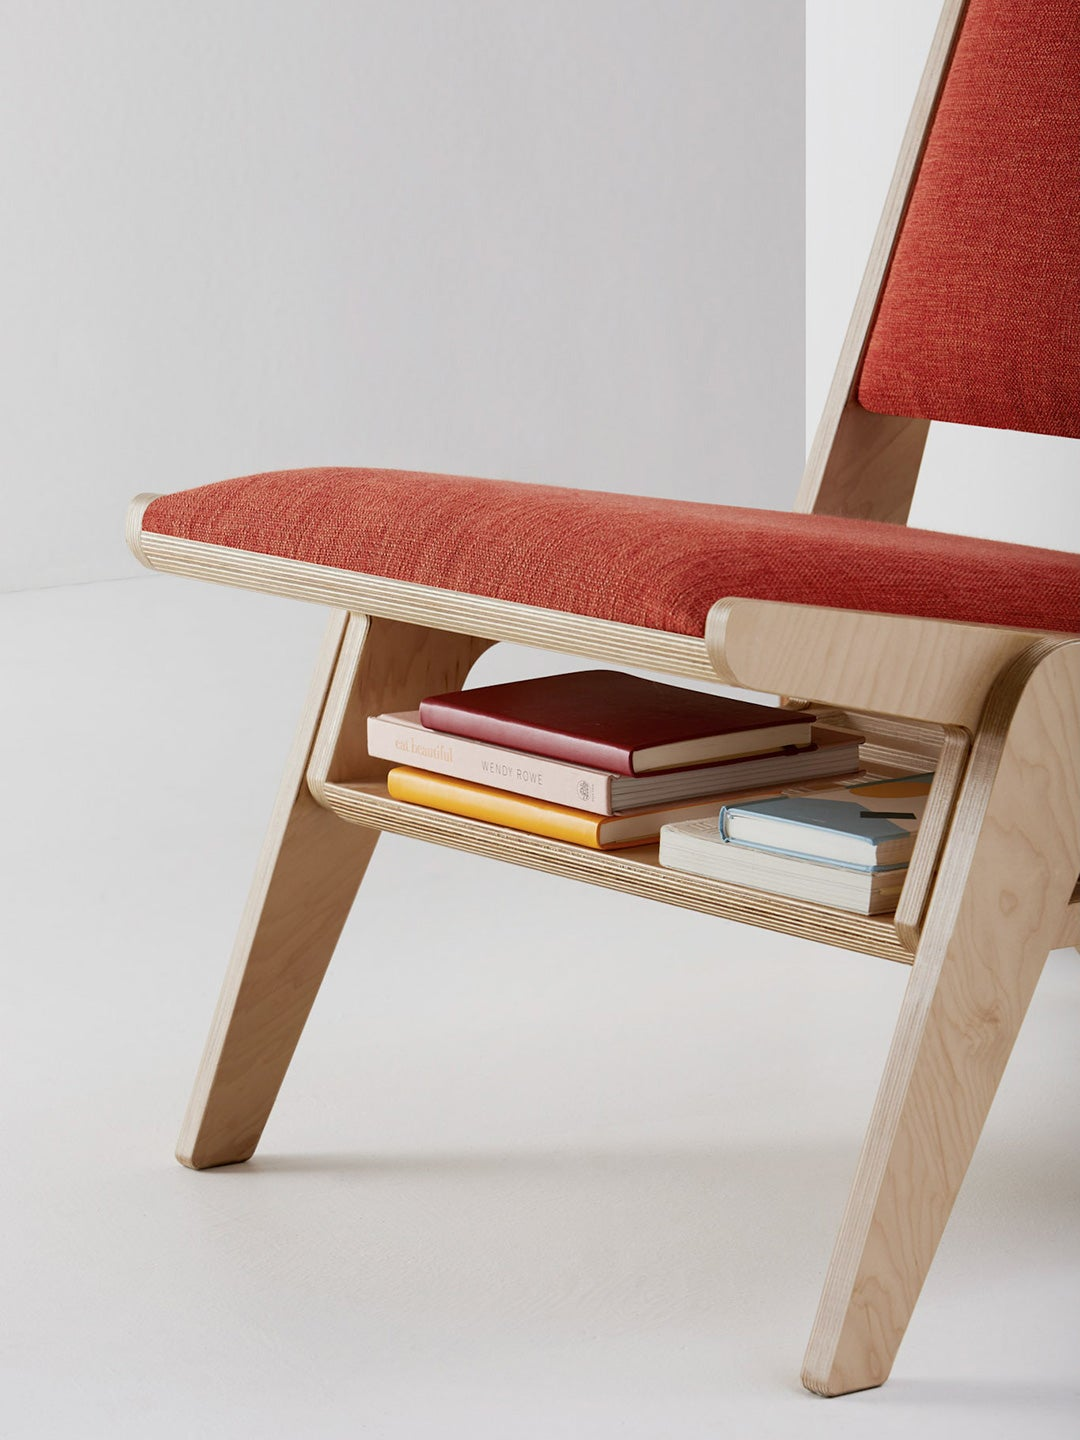 red chair with shelf for books